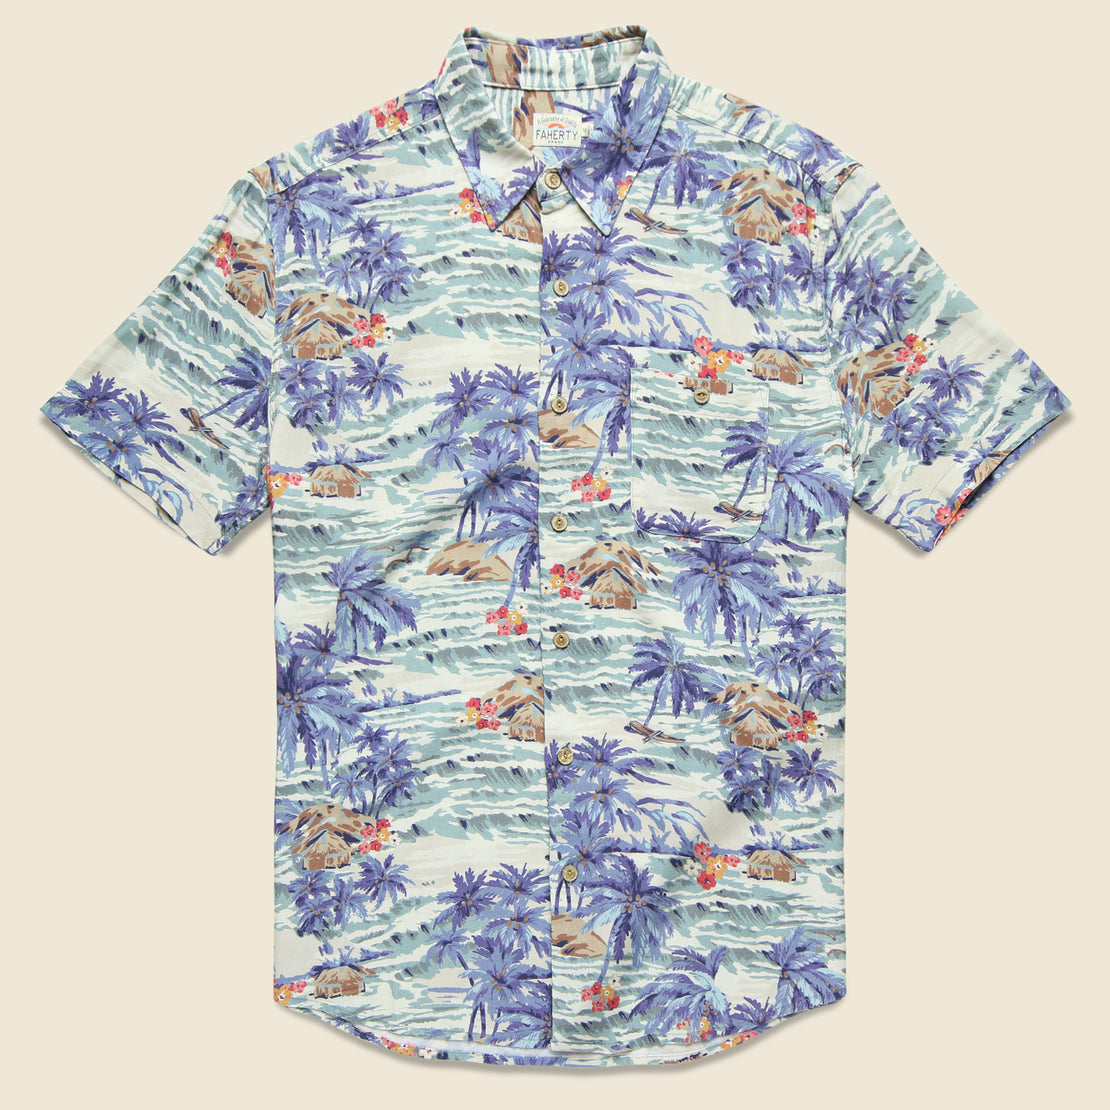 Faherty Tahitian Dreams Hawaiian Shirt - Multi